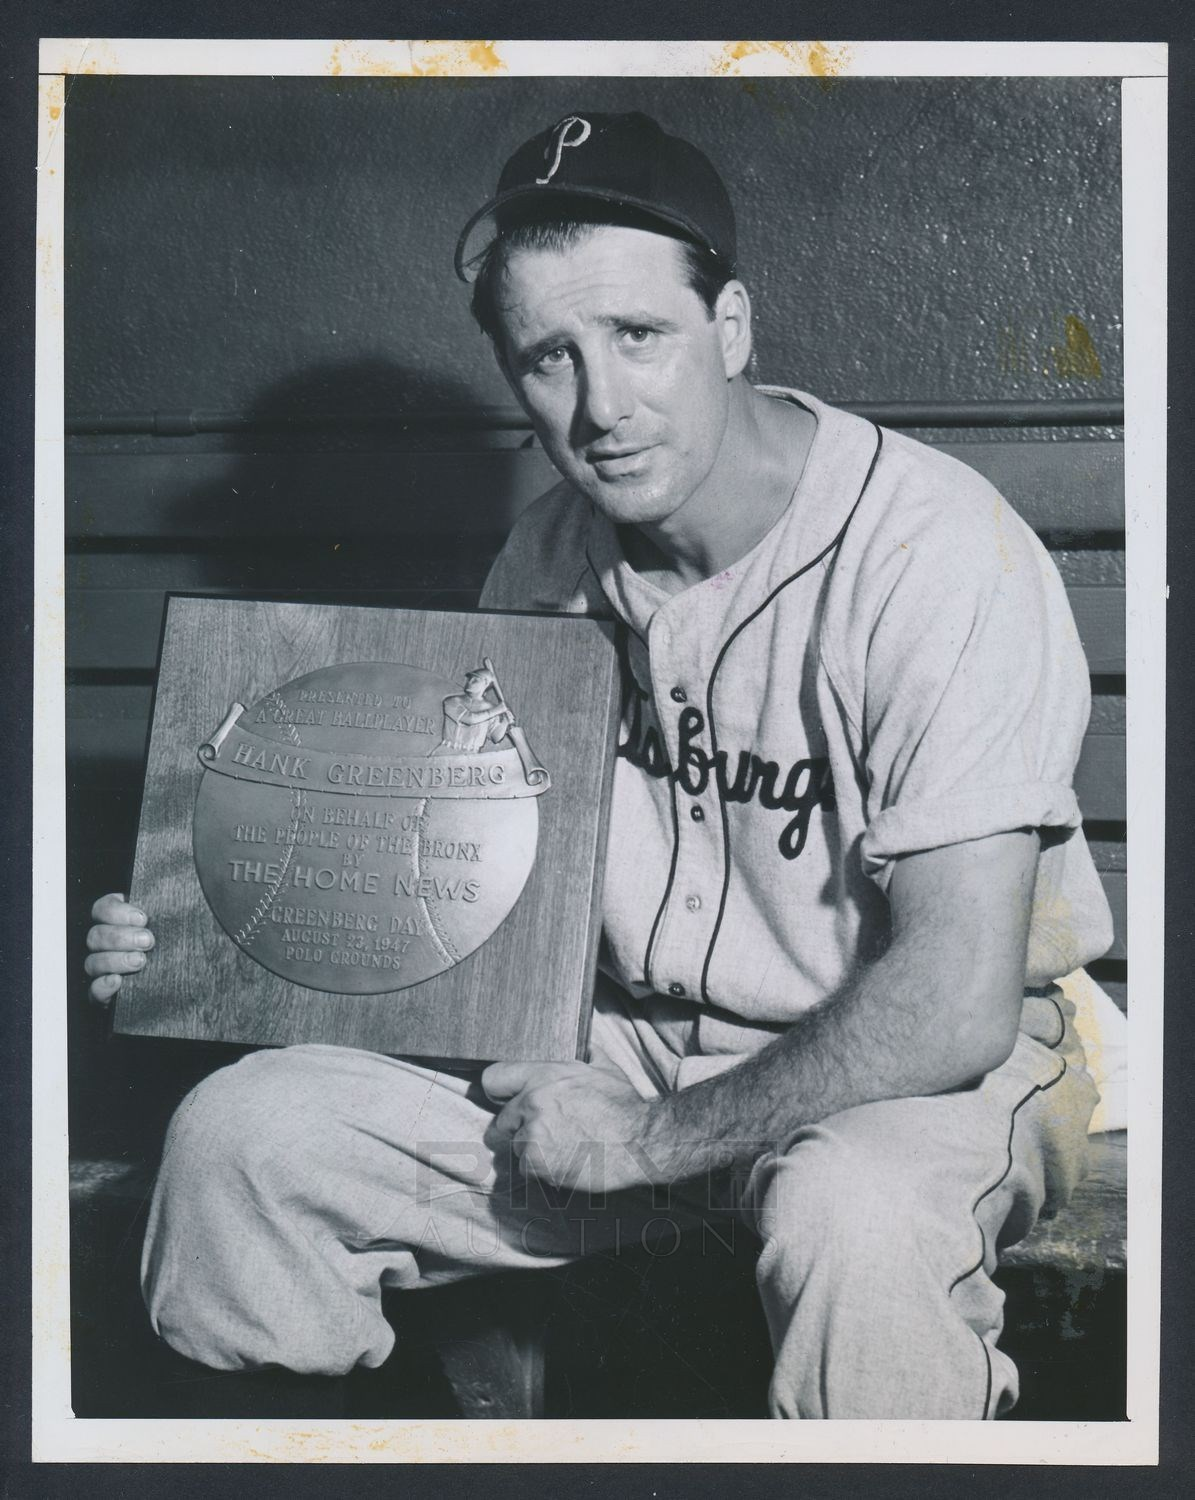 Hank Greenberg poses with plaque during his final MLB season